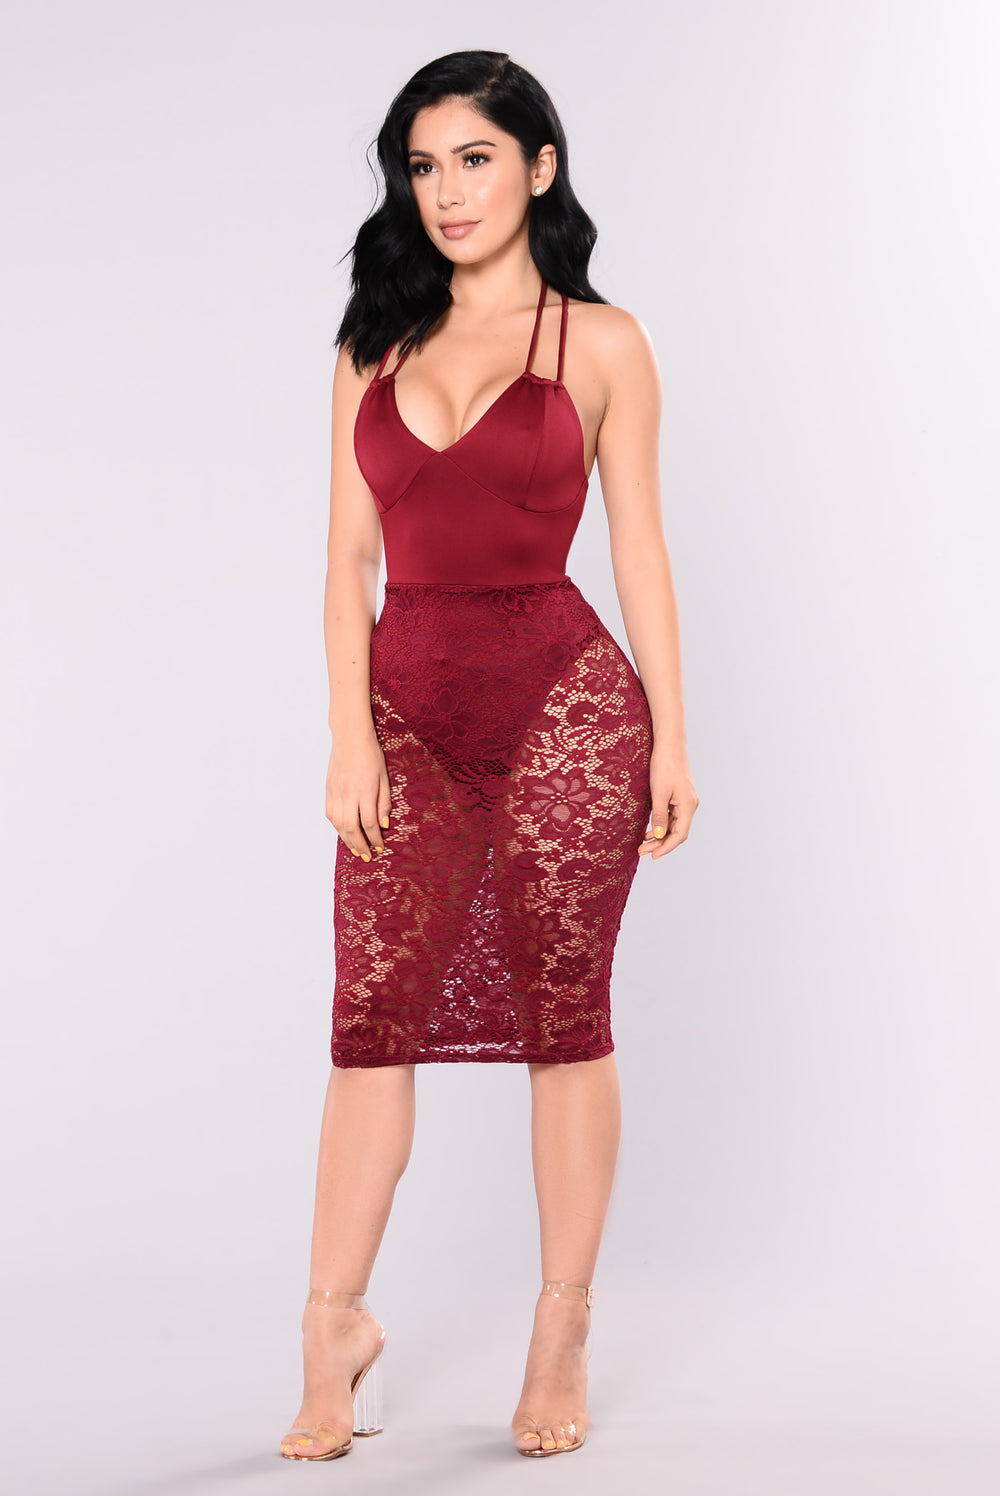 More Lace Please Dress - Wine